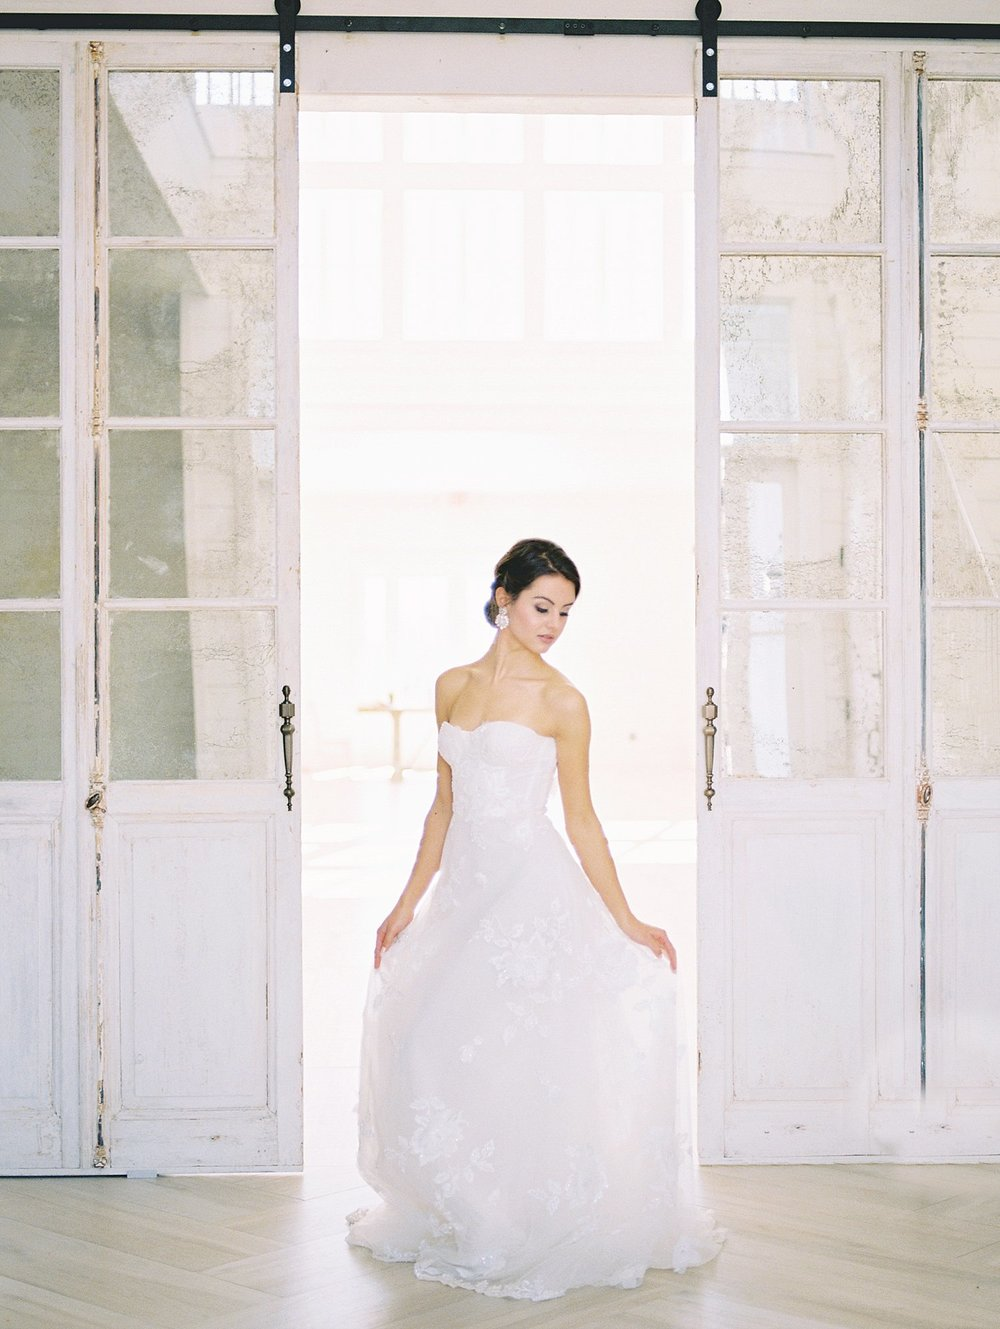 Bridals with antique farm doors